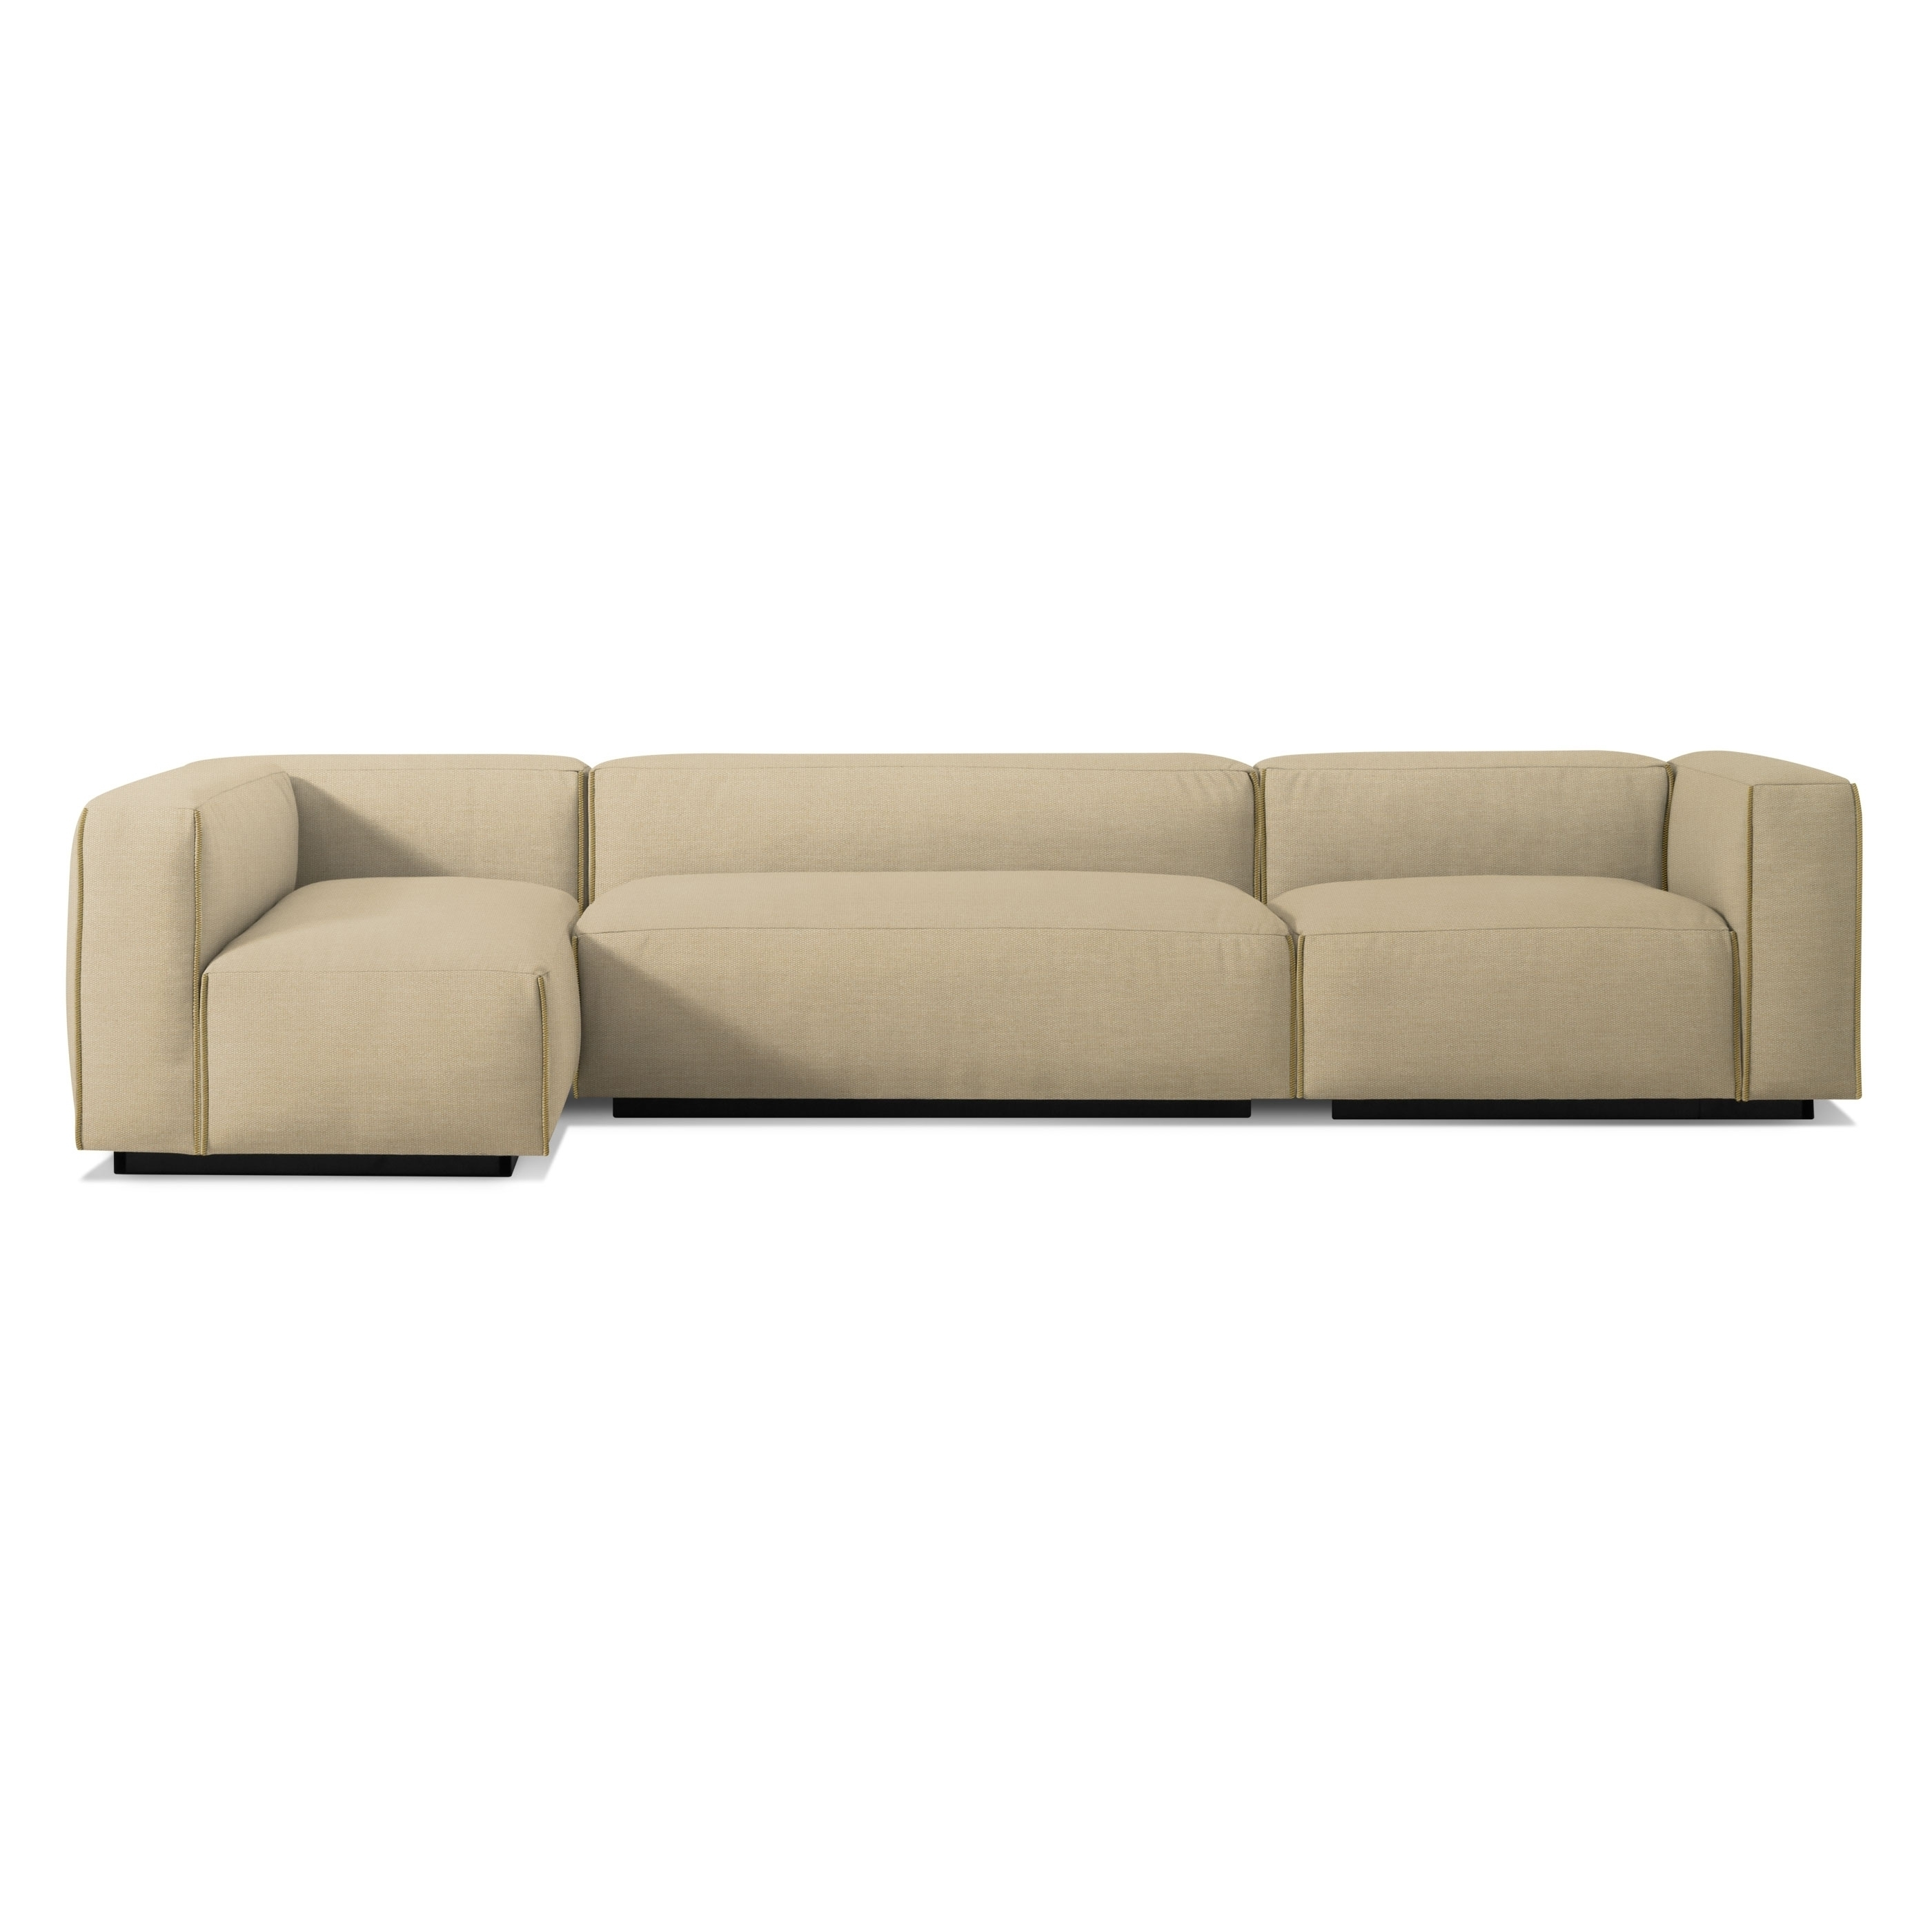 20 Best Collection Of Newfoundland Sectional Sofas Inside Newfoundland Sectional Sofas (View 3 of 10)